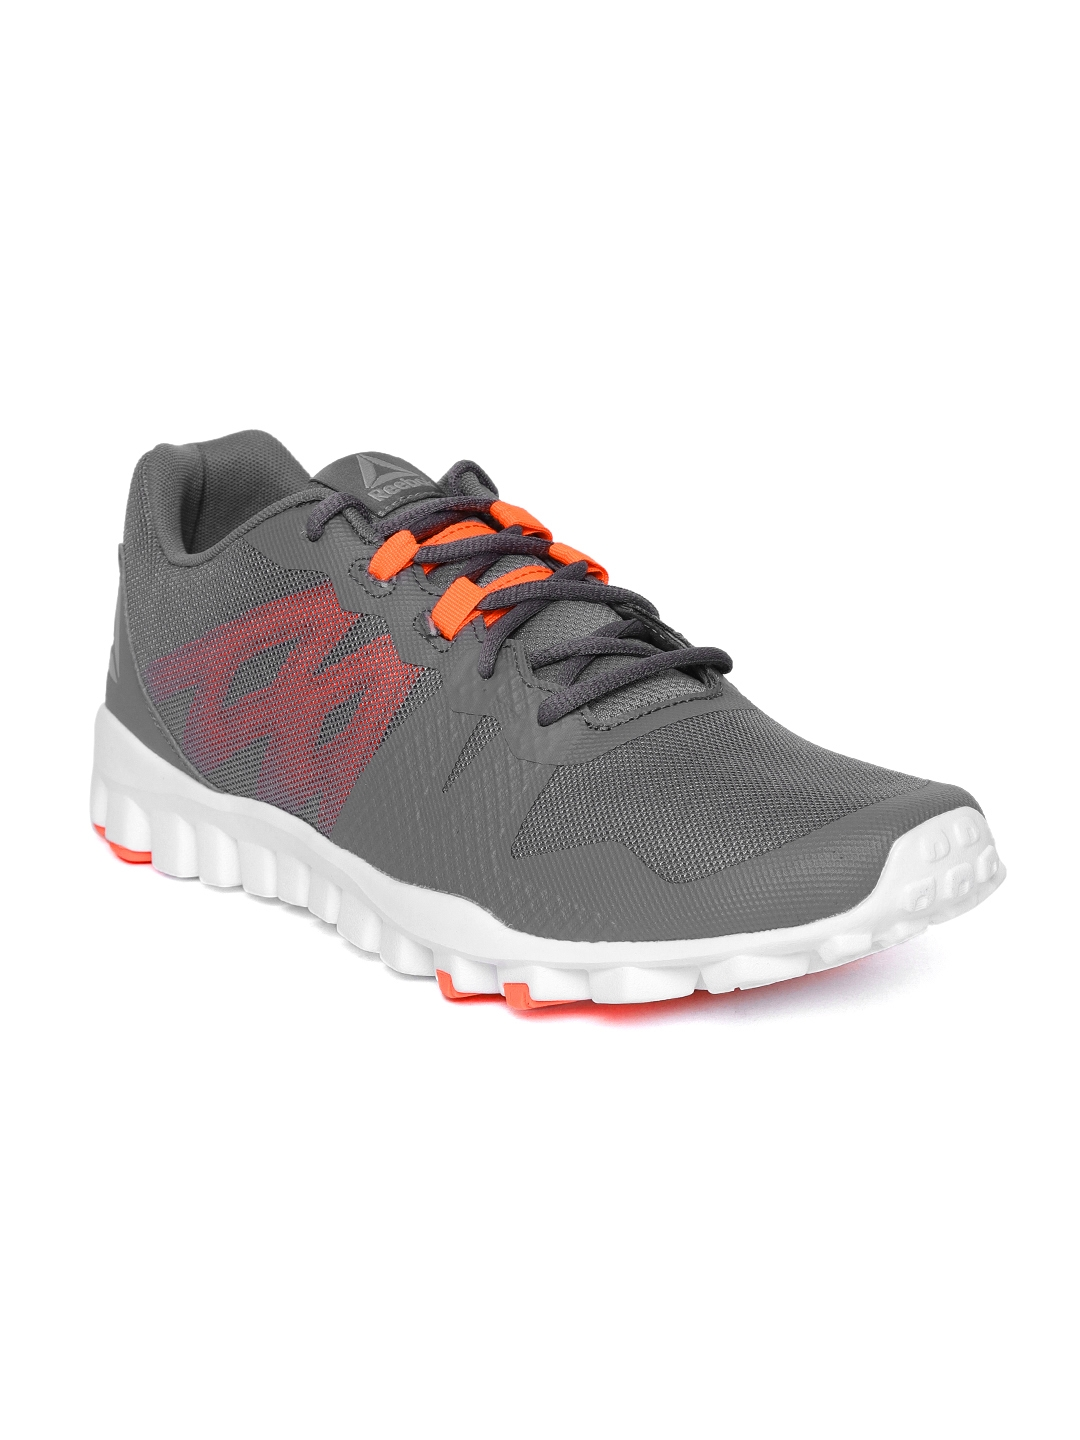 394f3a80d Buy Reebok Men REALFLEX TRAIN 5.0 Training Shoes - Sports Shoes for ...